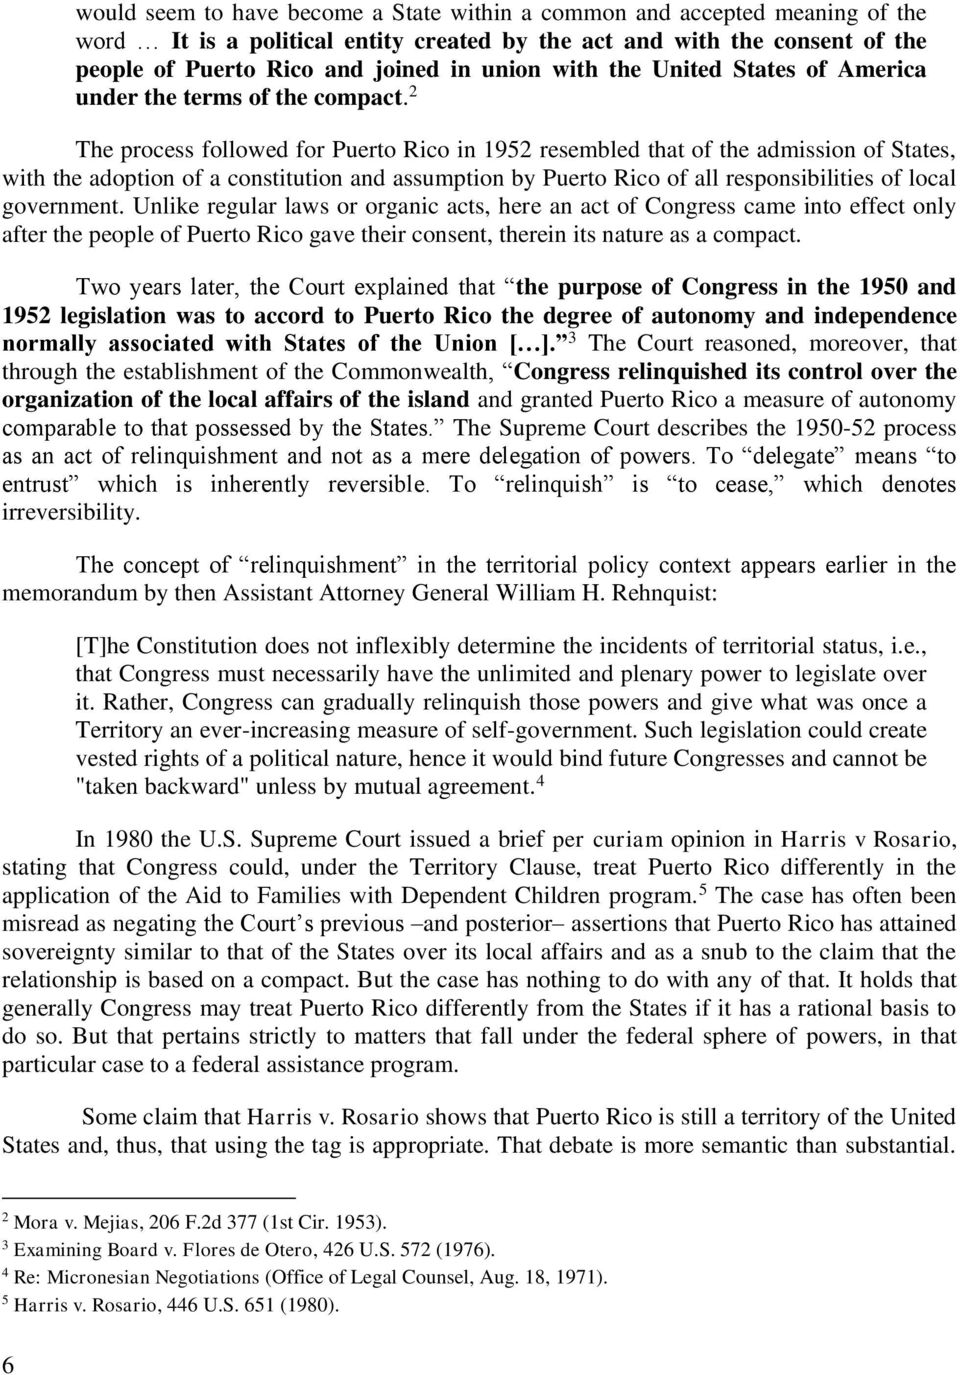 2 The process followed for Puerto Rico in 1952 resembled that of the admission of States, with the adoption of a constitution and assumption by Puerto Rico of all responsibilities of local government.